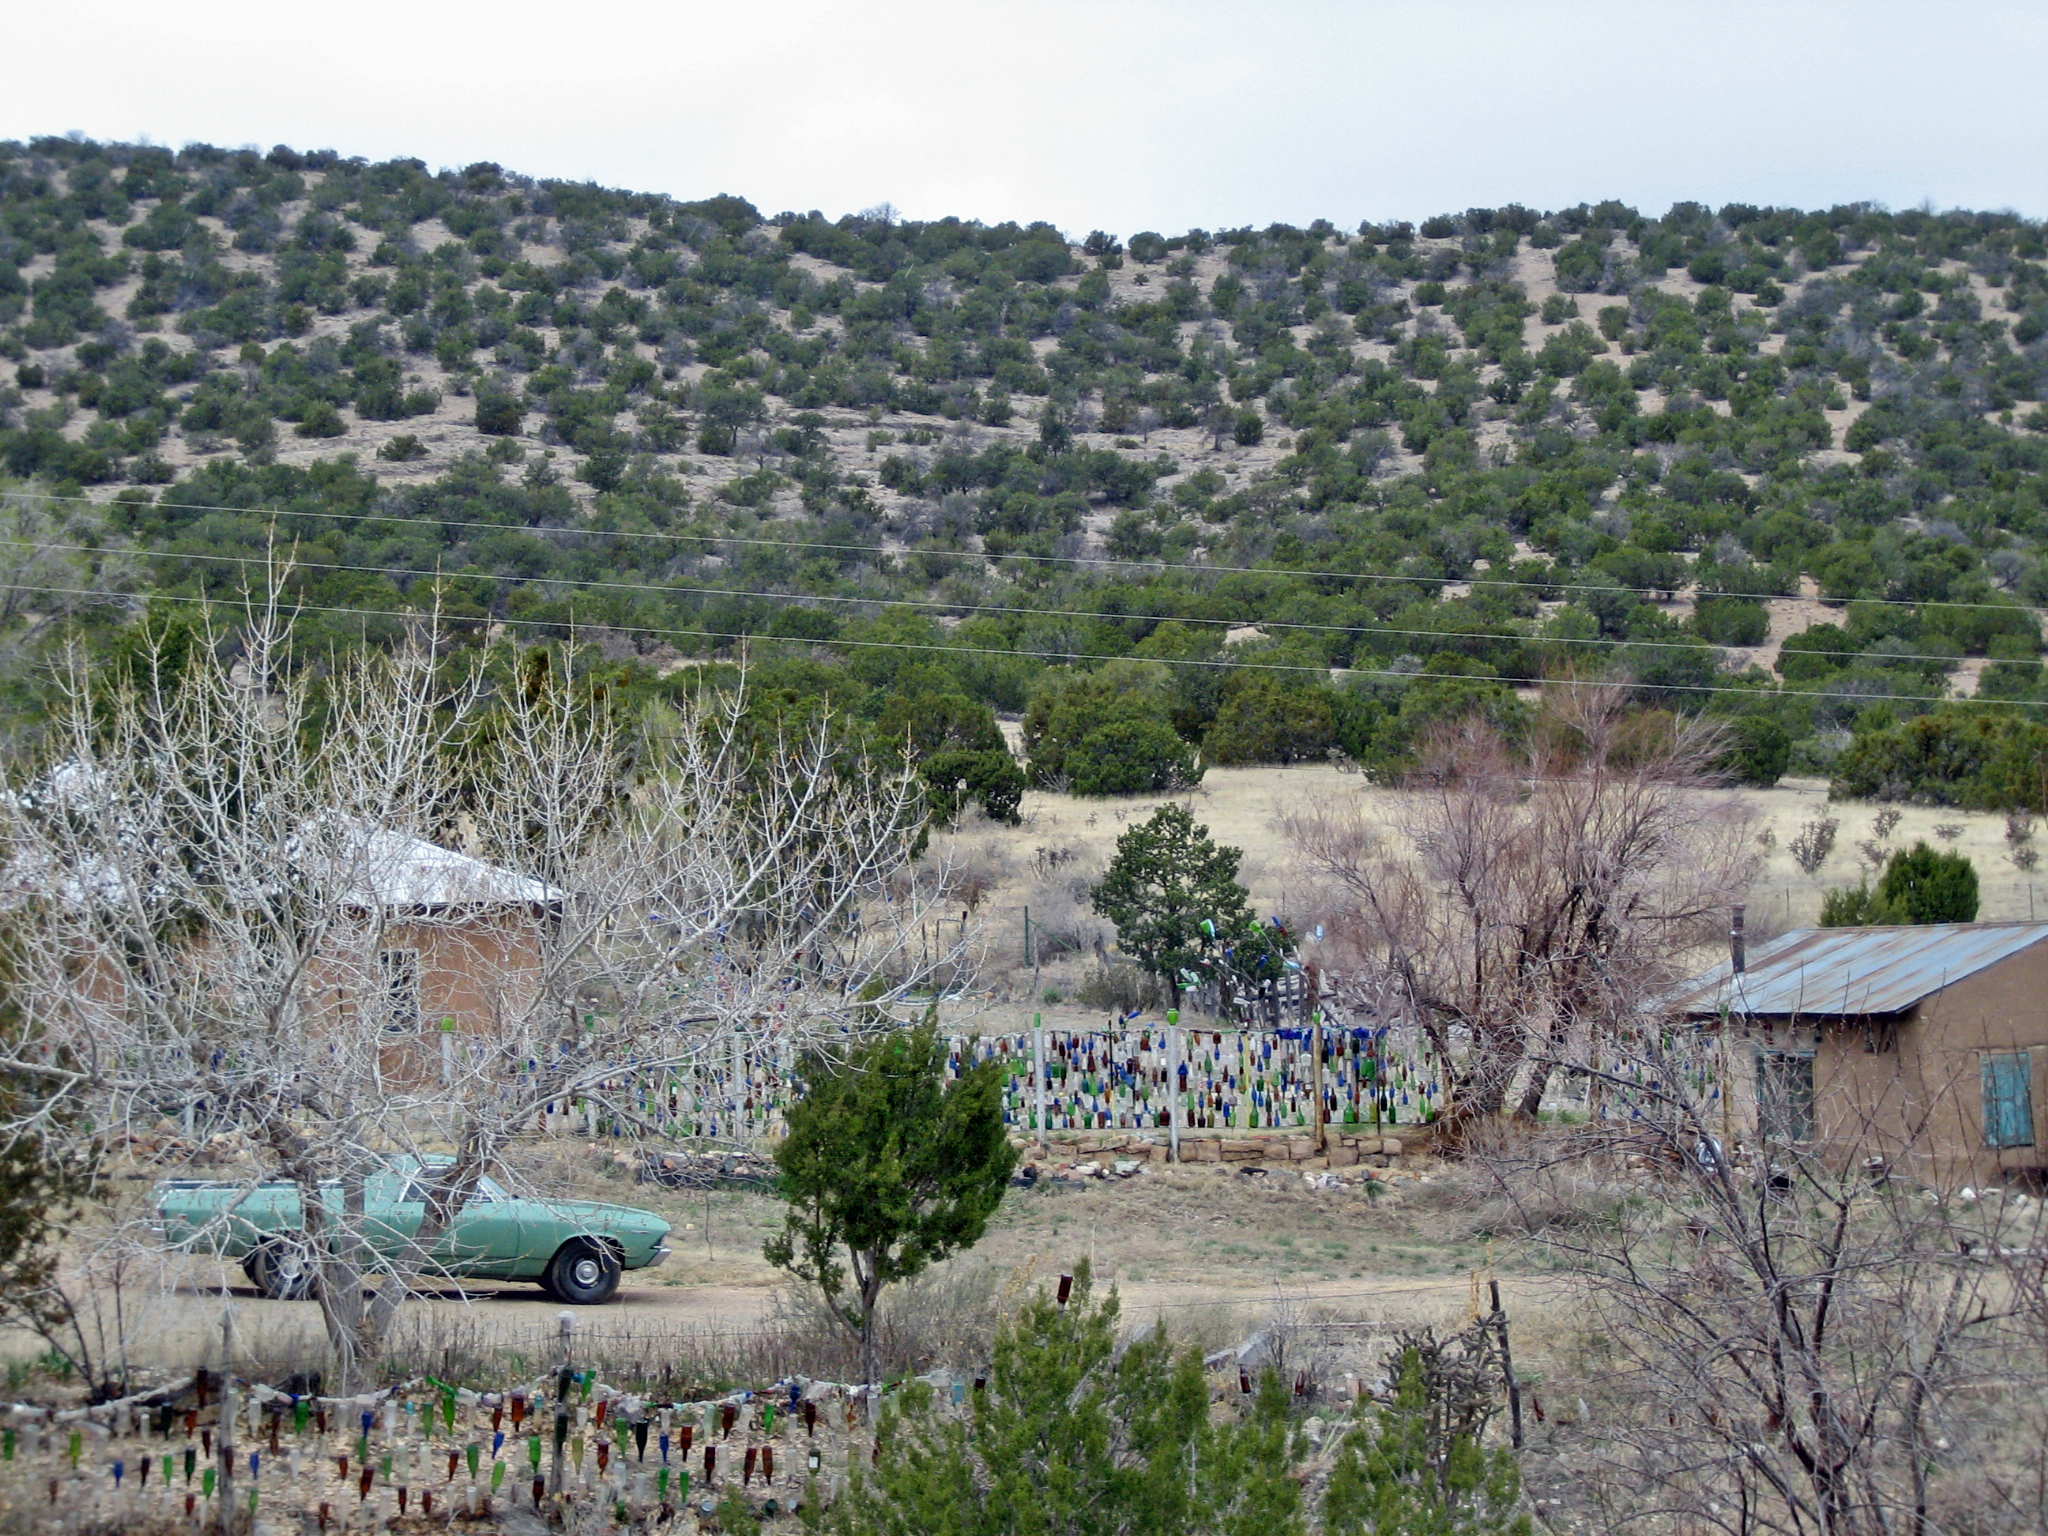 033007 Along the Turquoise Trail 01